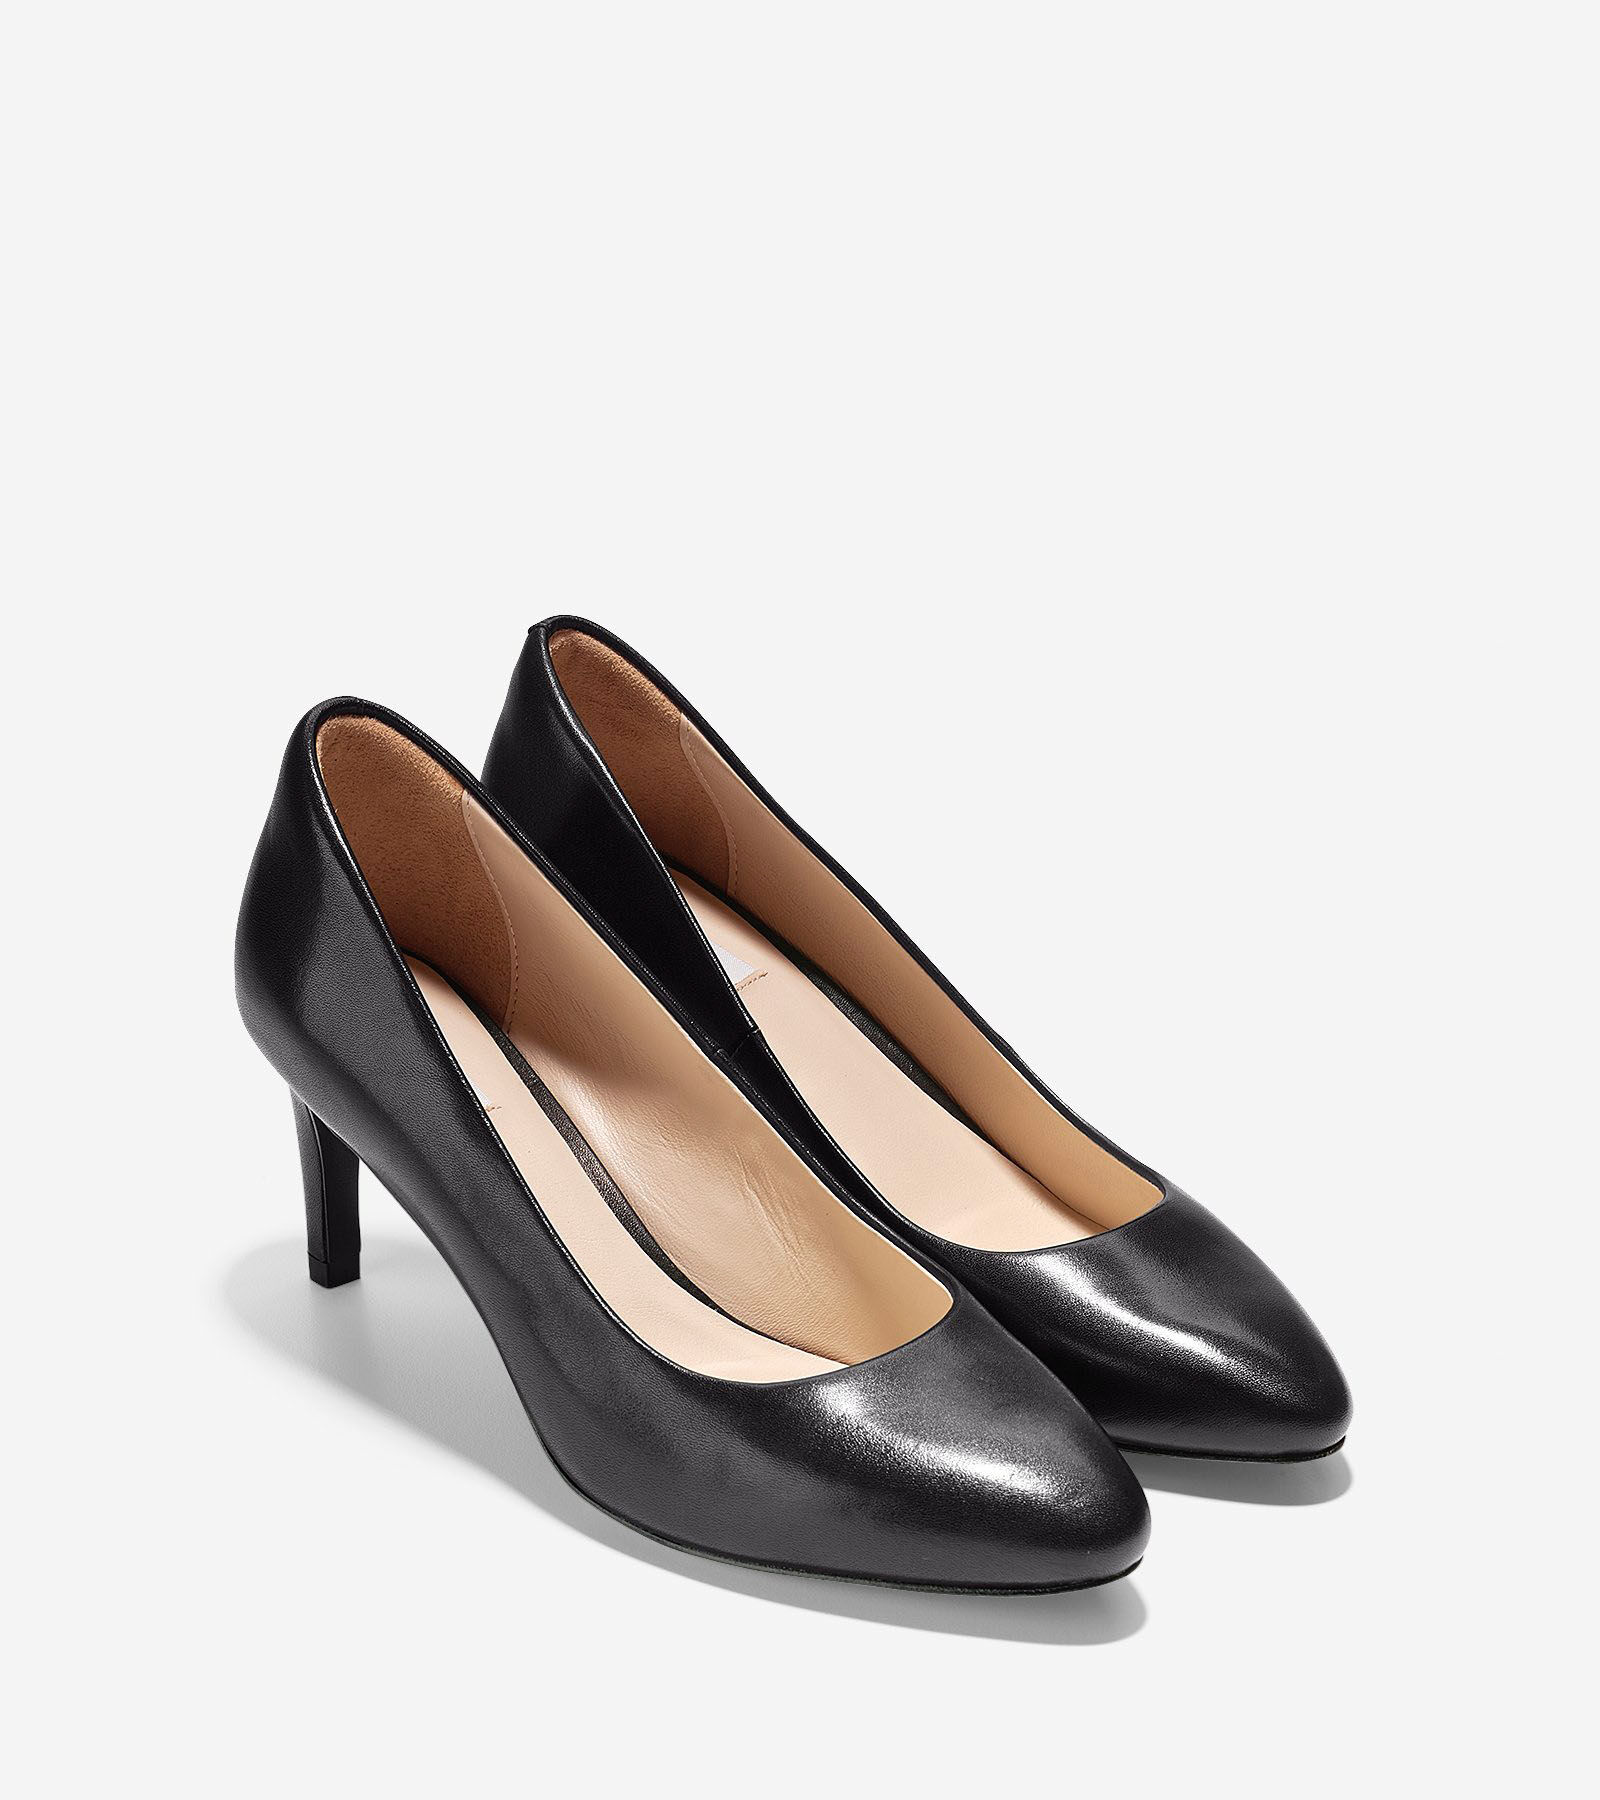 cole haan shoes grand 65mm turbocharger for sale 709775